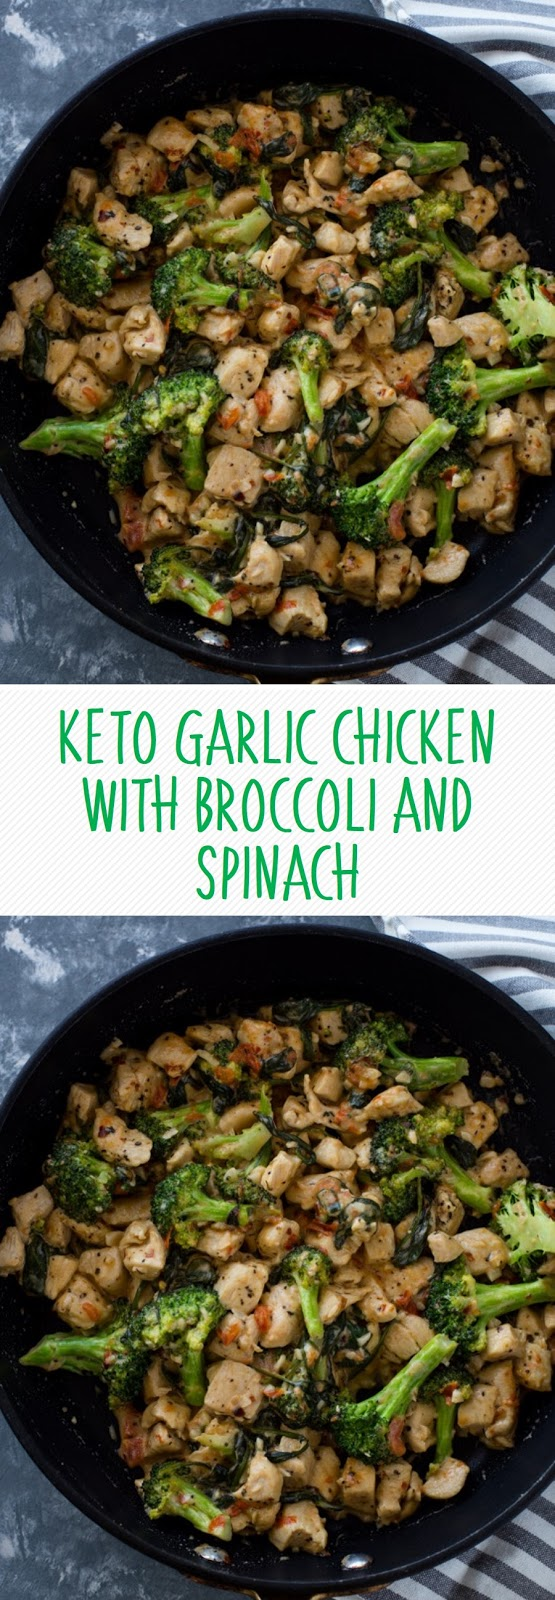 KETO GARLIC CHICKEN WITH BROCCOLI AND SPINACH